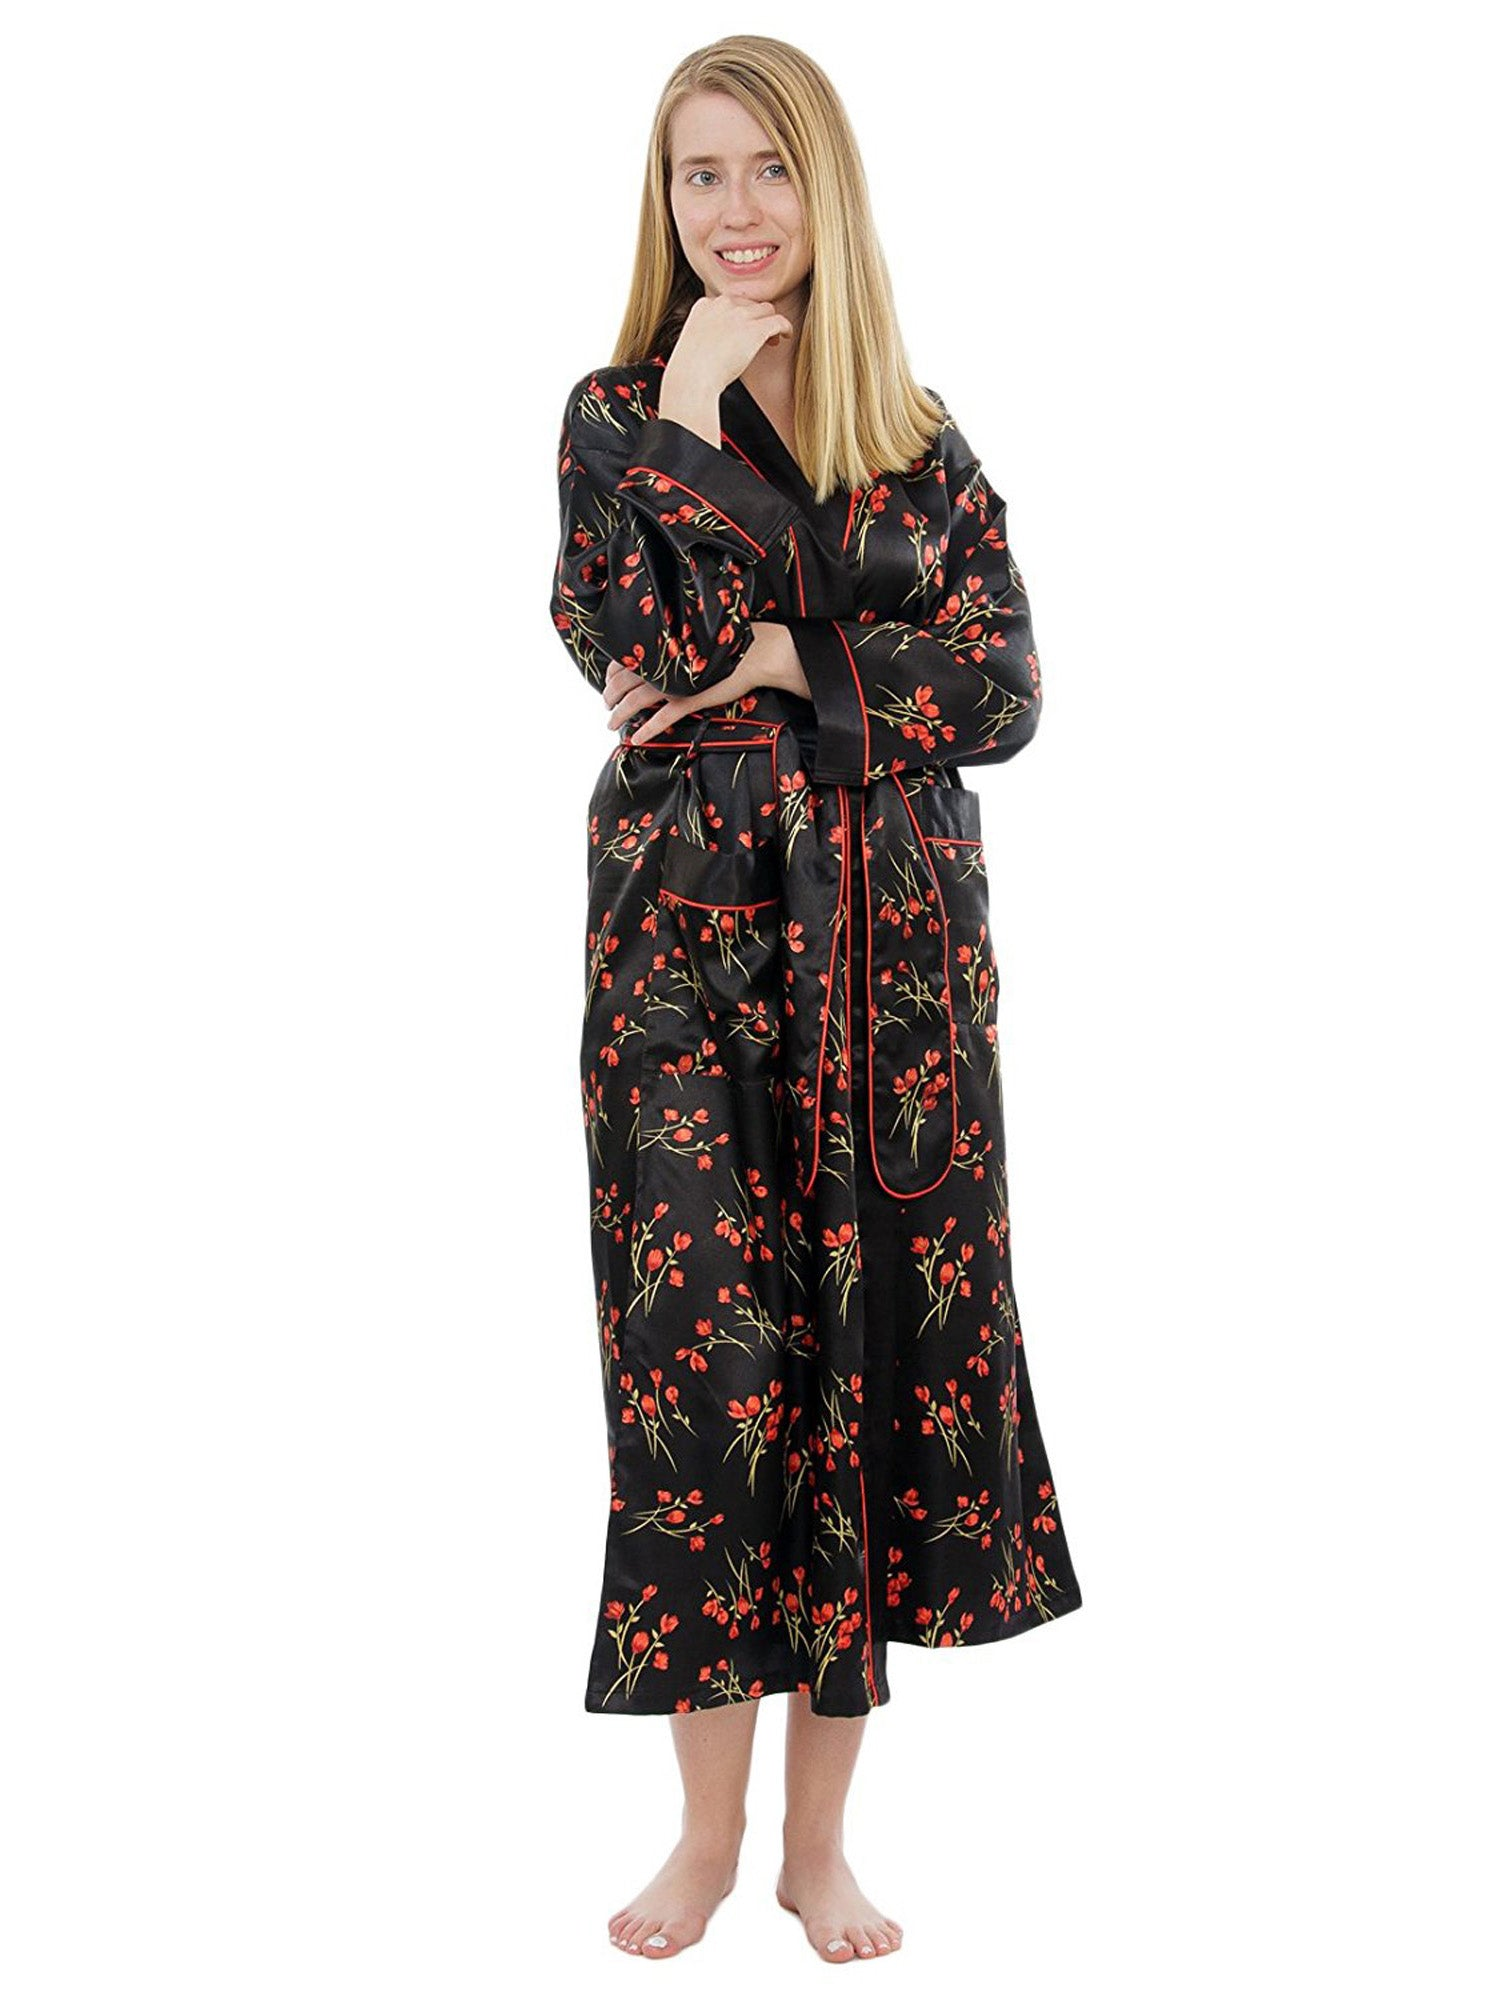 Women's Long Robe, Satin, Vintage Rose Print with Pockets